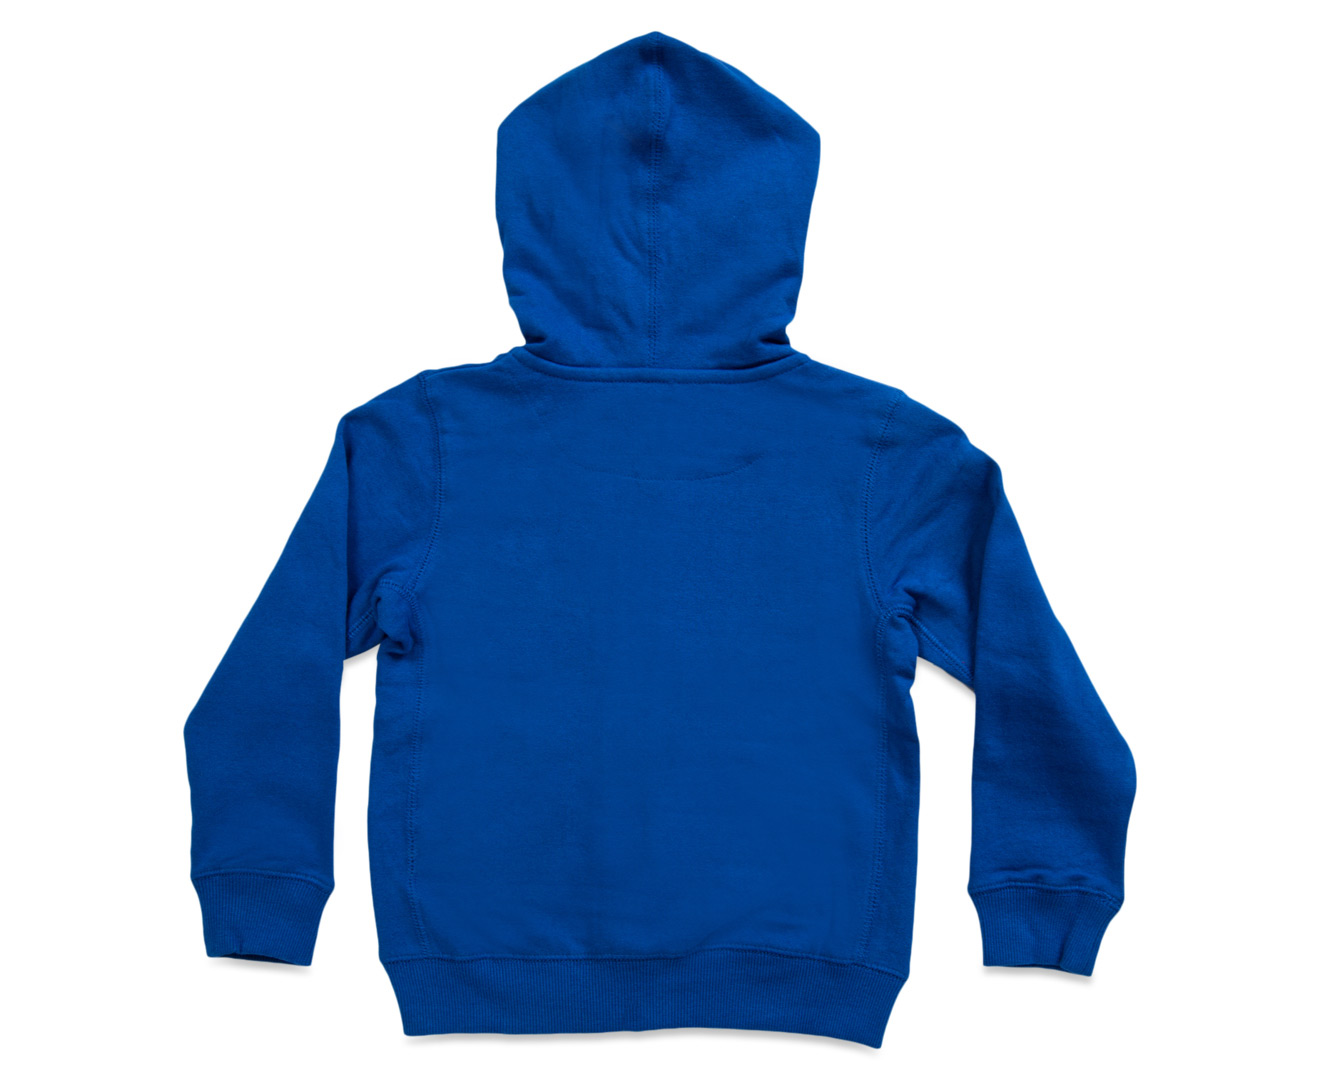 Older Boys Younger Boys sweatshirts and hoodies - Next Australia. International Shipping And Returns Available. Buy Now! Click here to use our website with more accessibility support, for example screen readers. downloadsolutionspa5tr.gq Older Boys Younger Boys sweatshirts and hoodies.